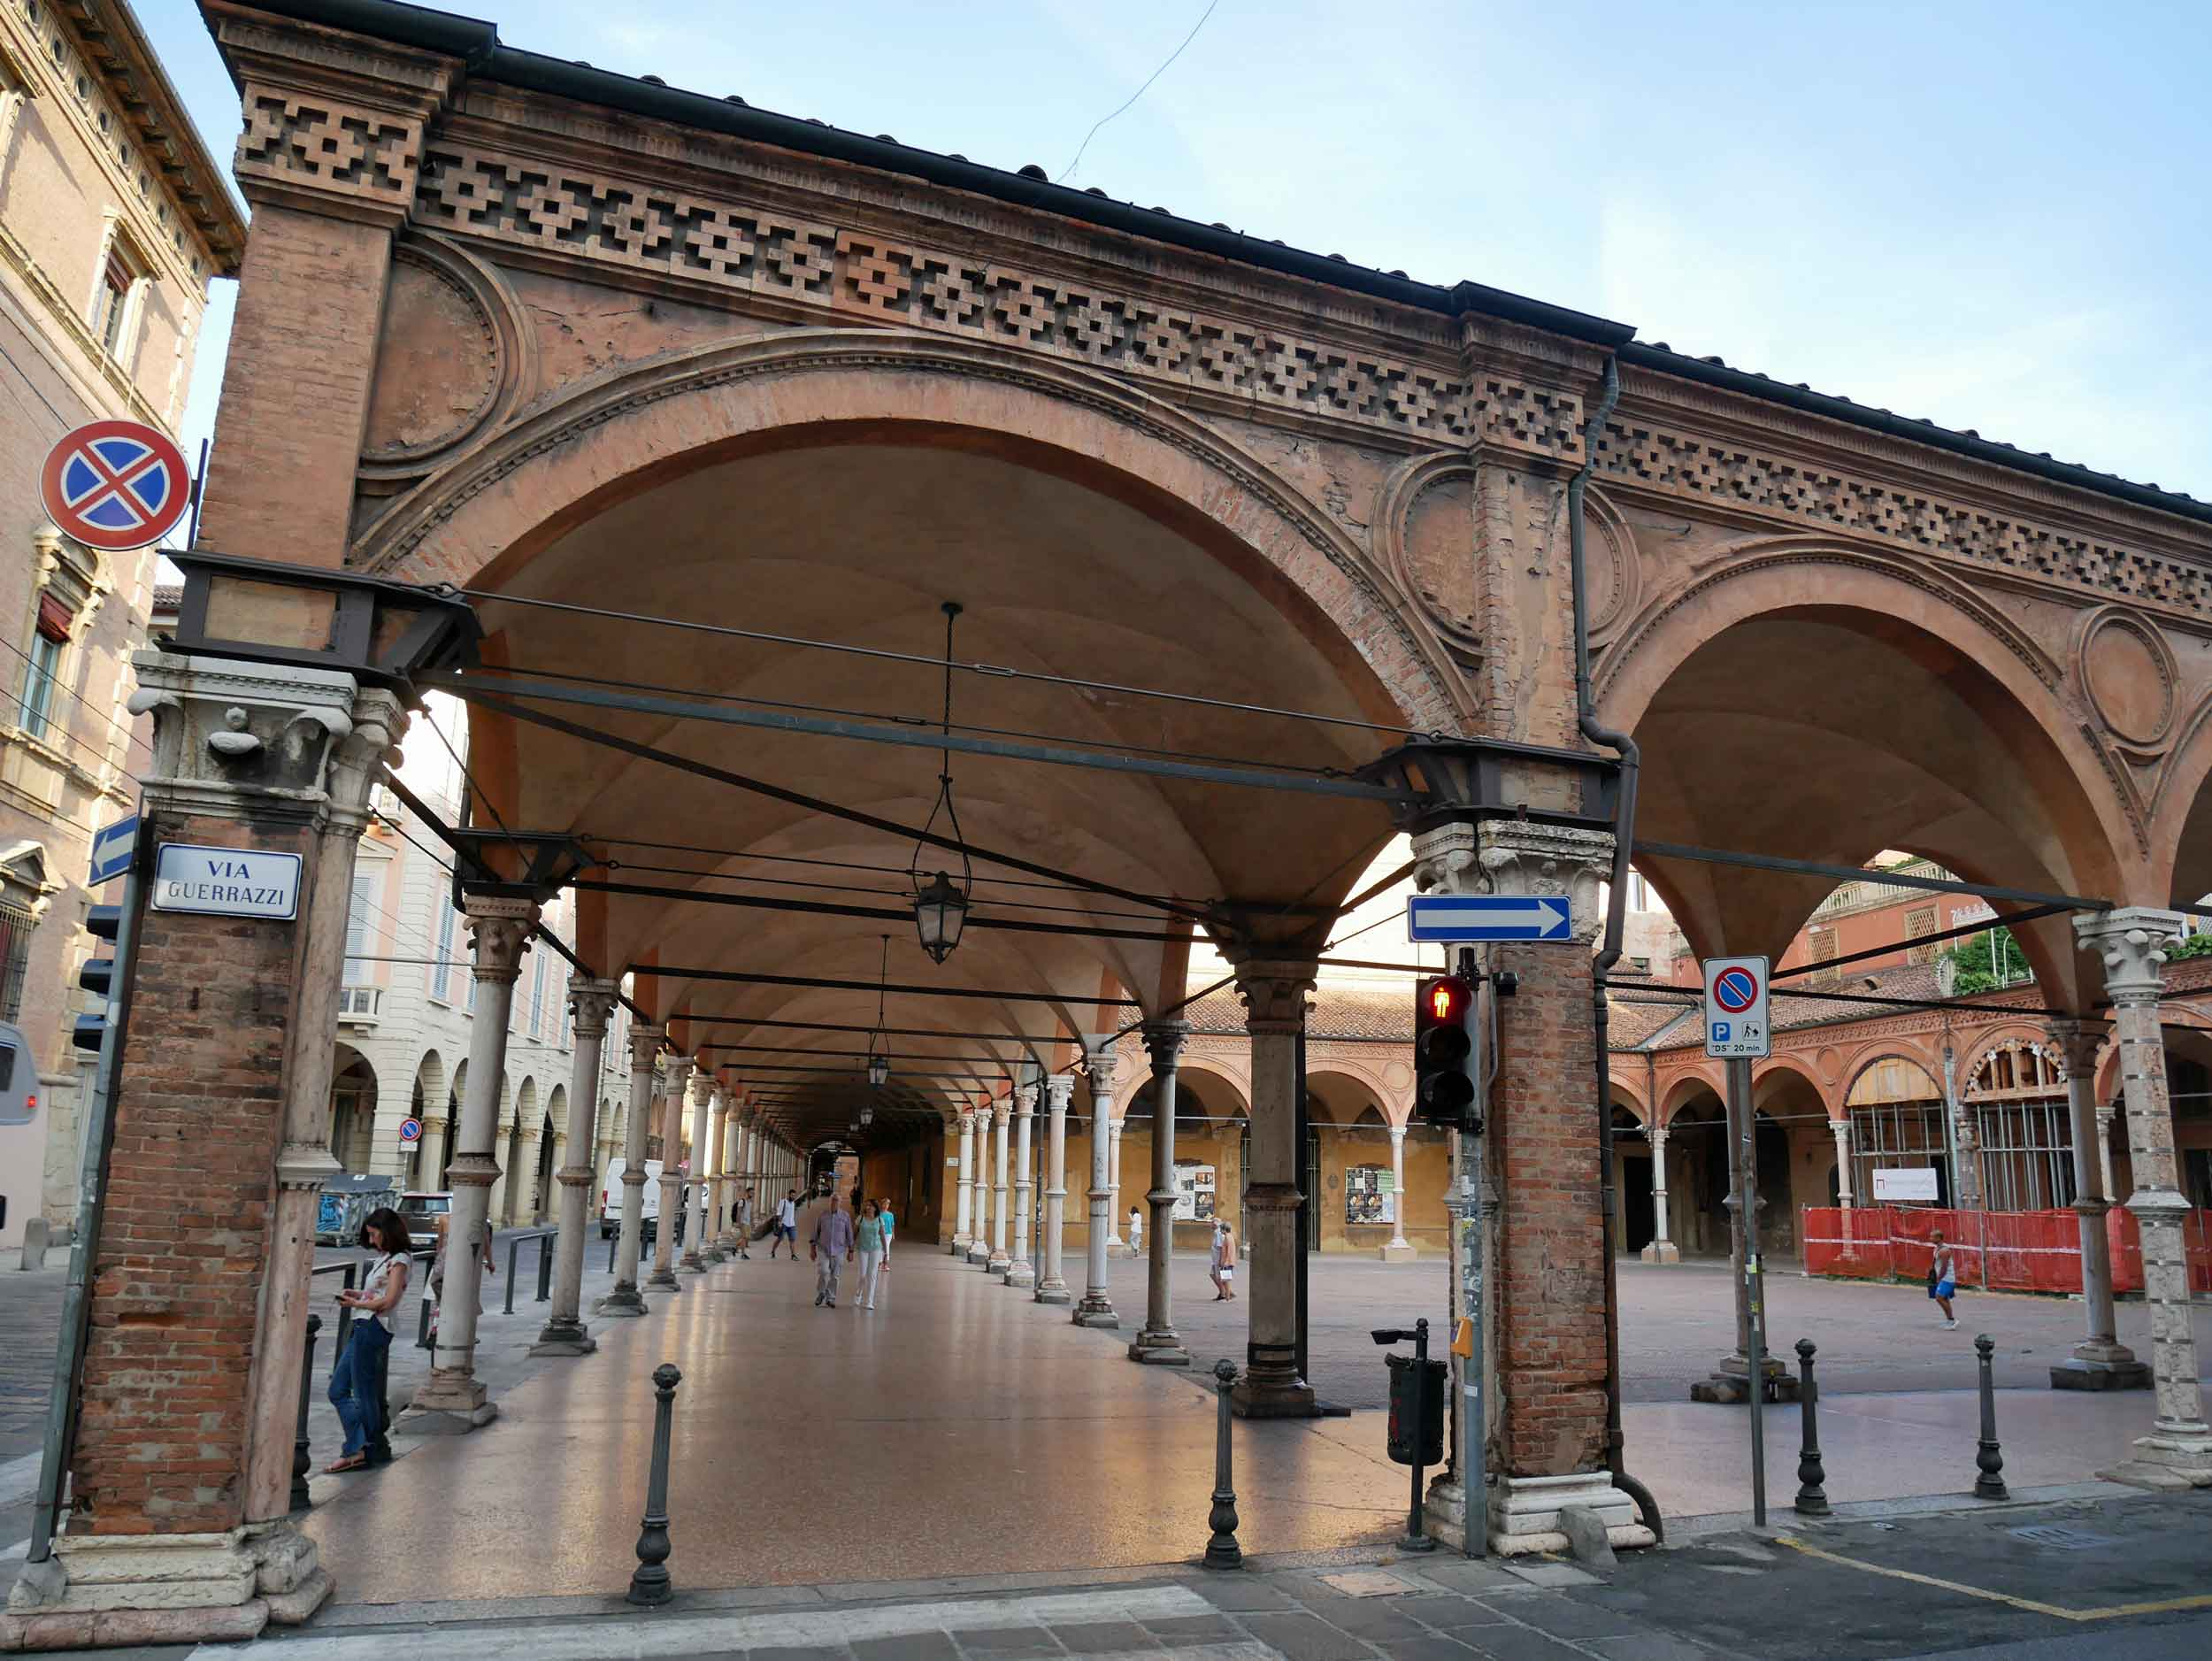 Bologna is also home to many lengthy porticoes, some 38 kilometres in the city's historical center.